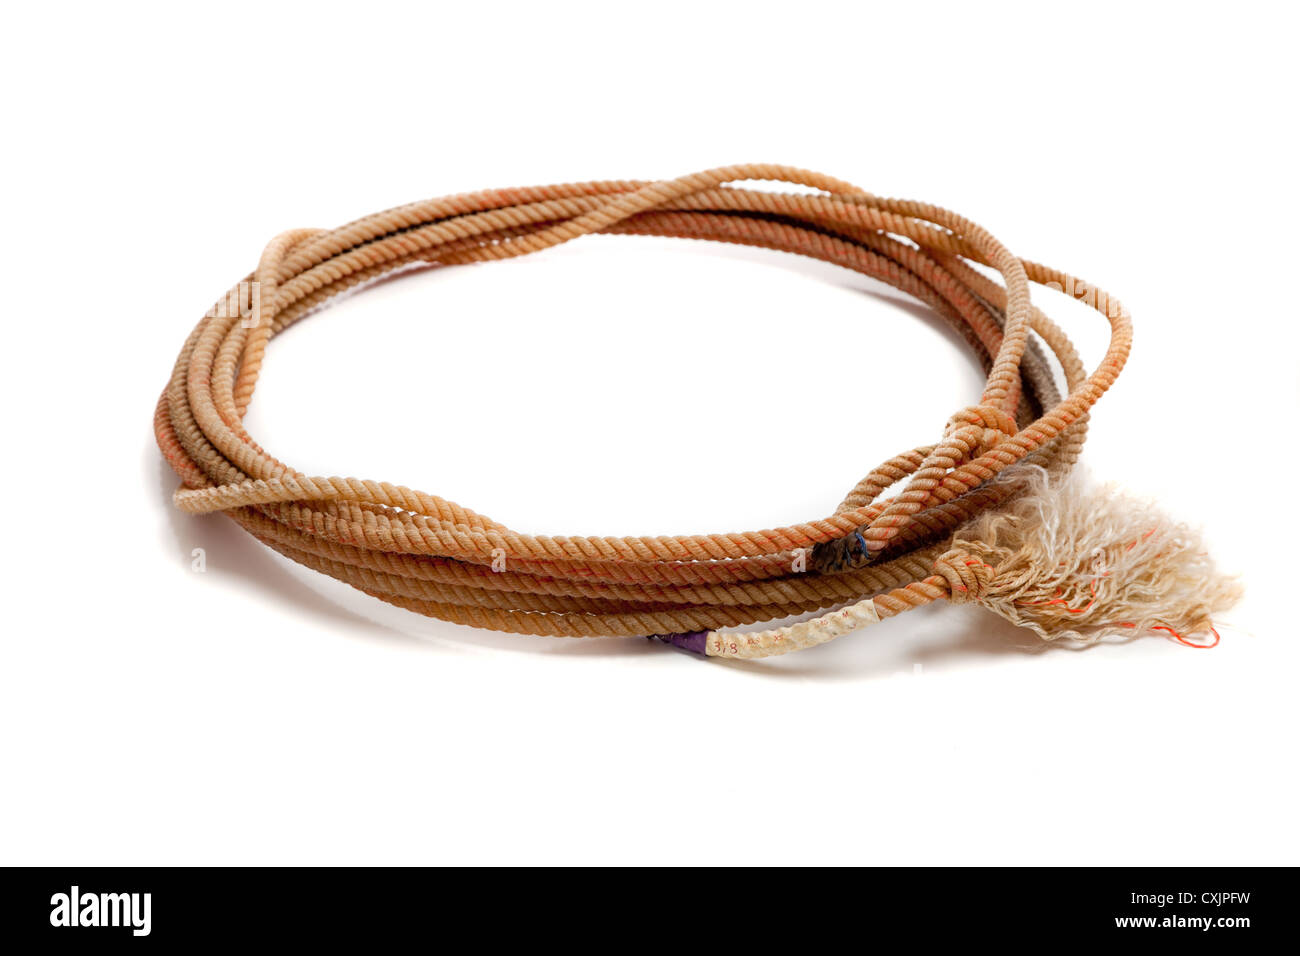 Lasso or lariat on a white background with a copy space - Stock Image